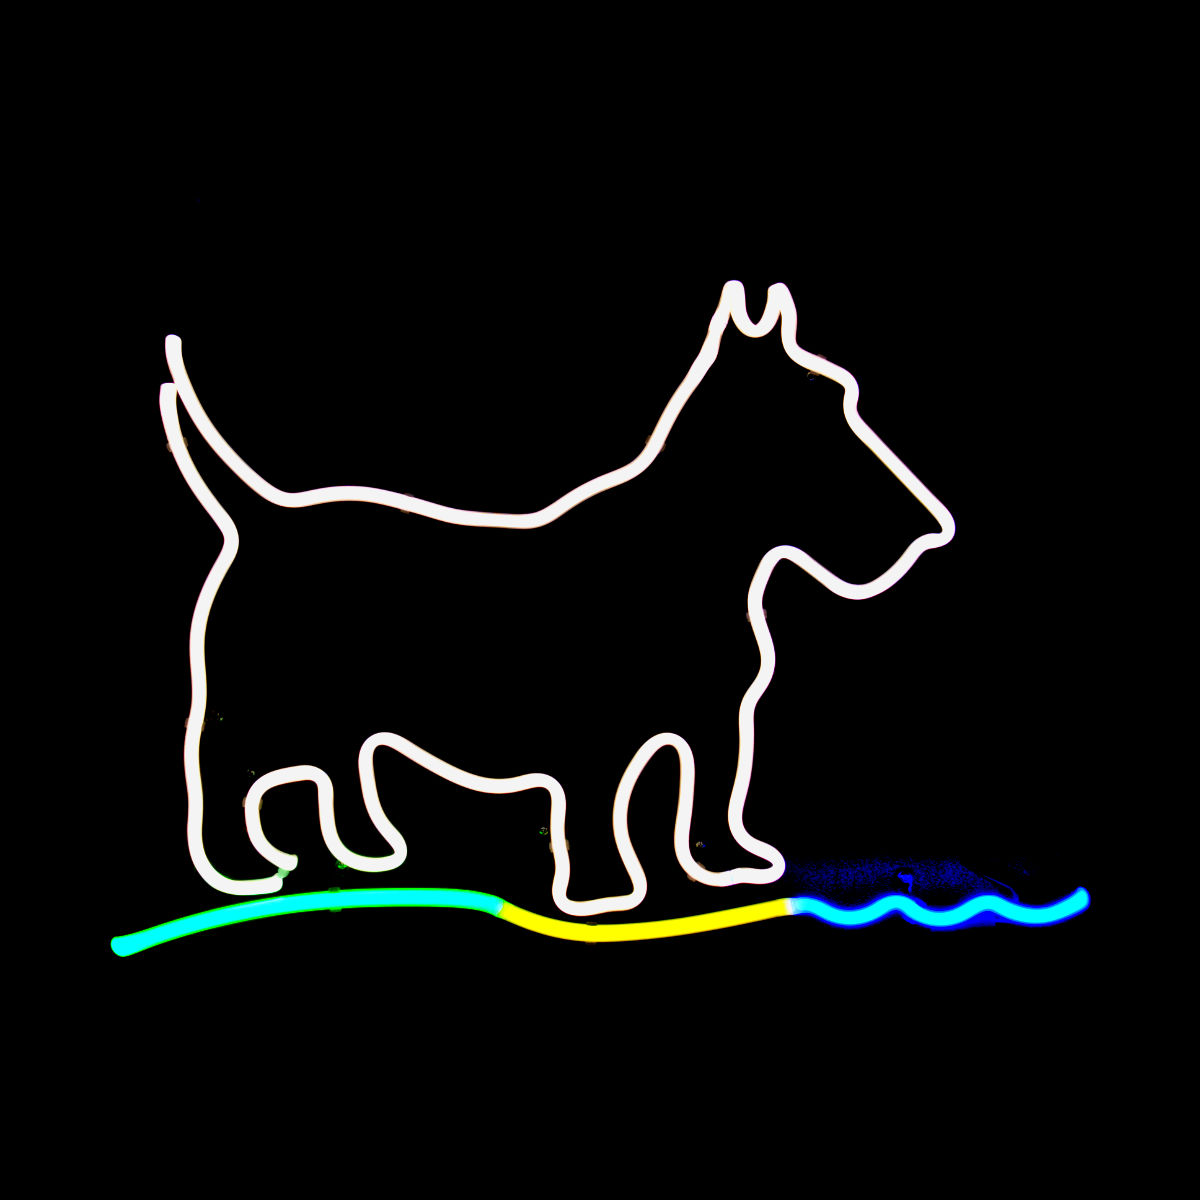 Scottie Dog Designer Neon Light Sculpture by John Barton - BartonNeonMagic.com